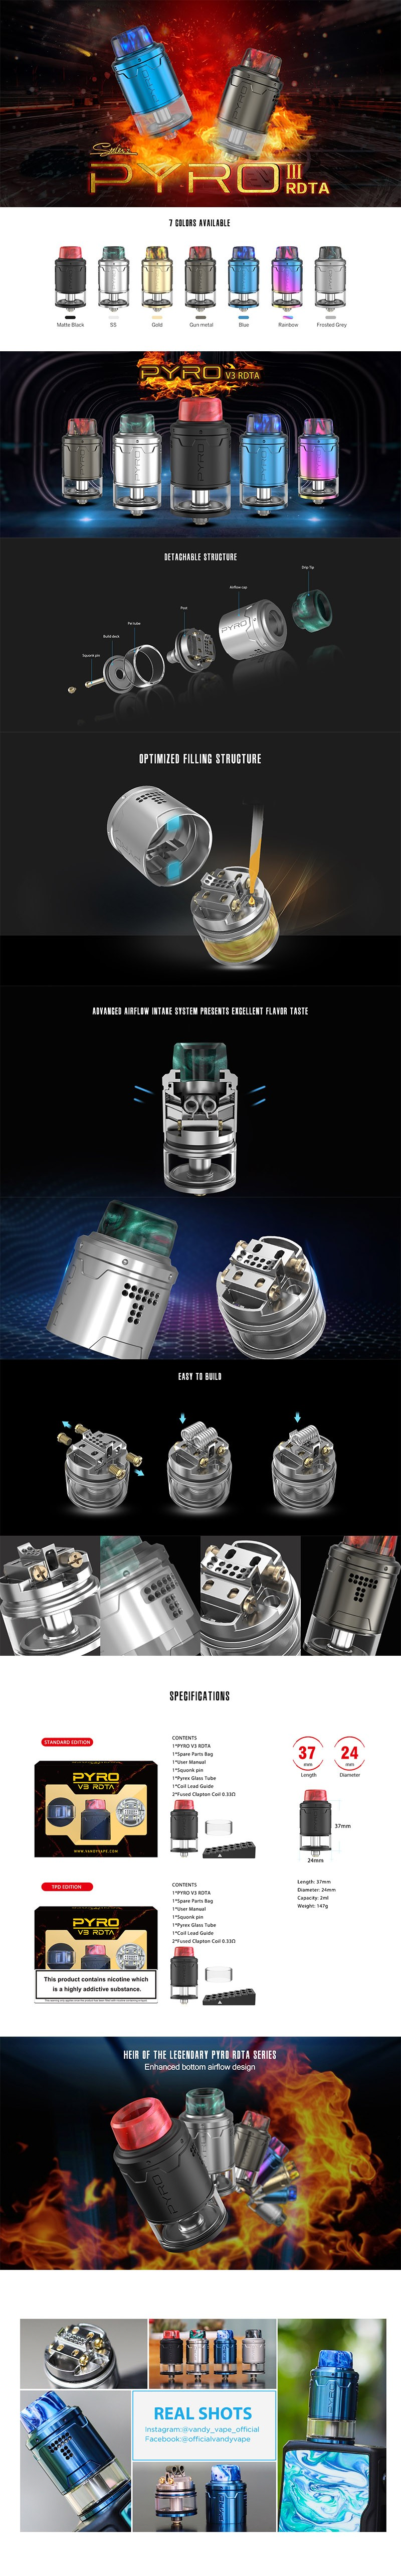 Vandy Vape Pyro V3 RDTA Rebuildable Dripping Tank Atomizer w/ BF Pin